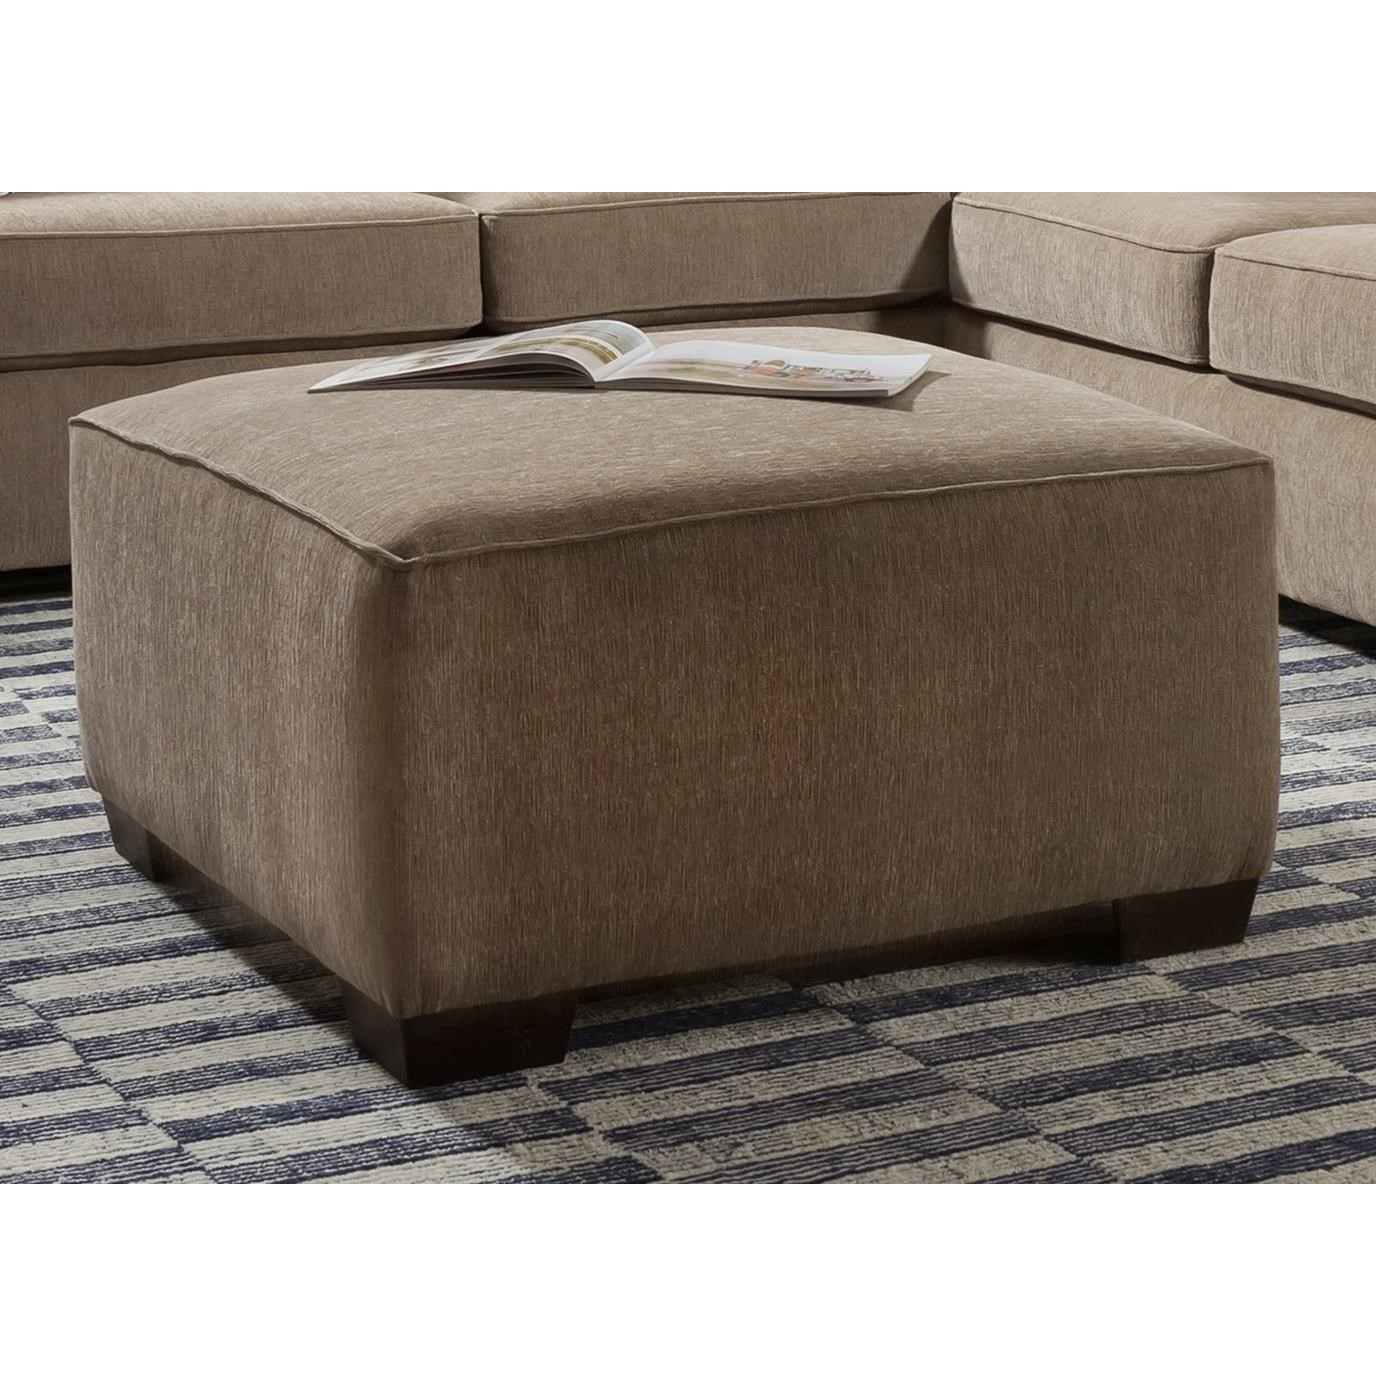 3010 Ottoman by Peak Living at Prime Brothers Furniture